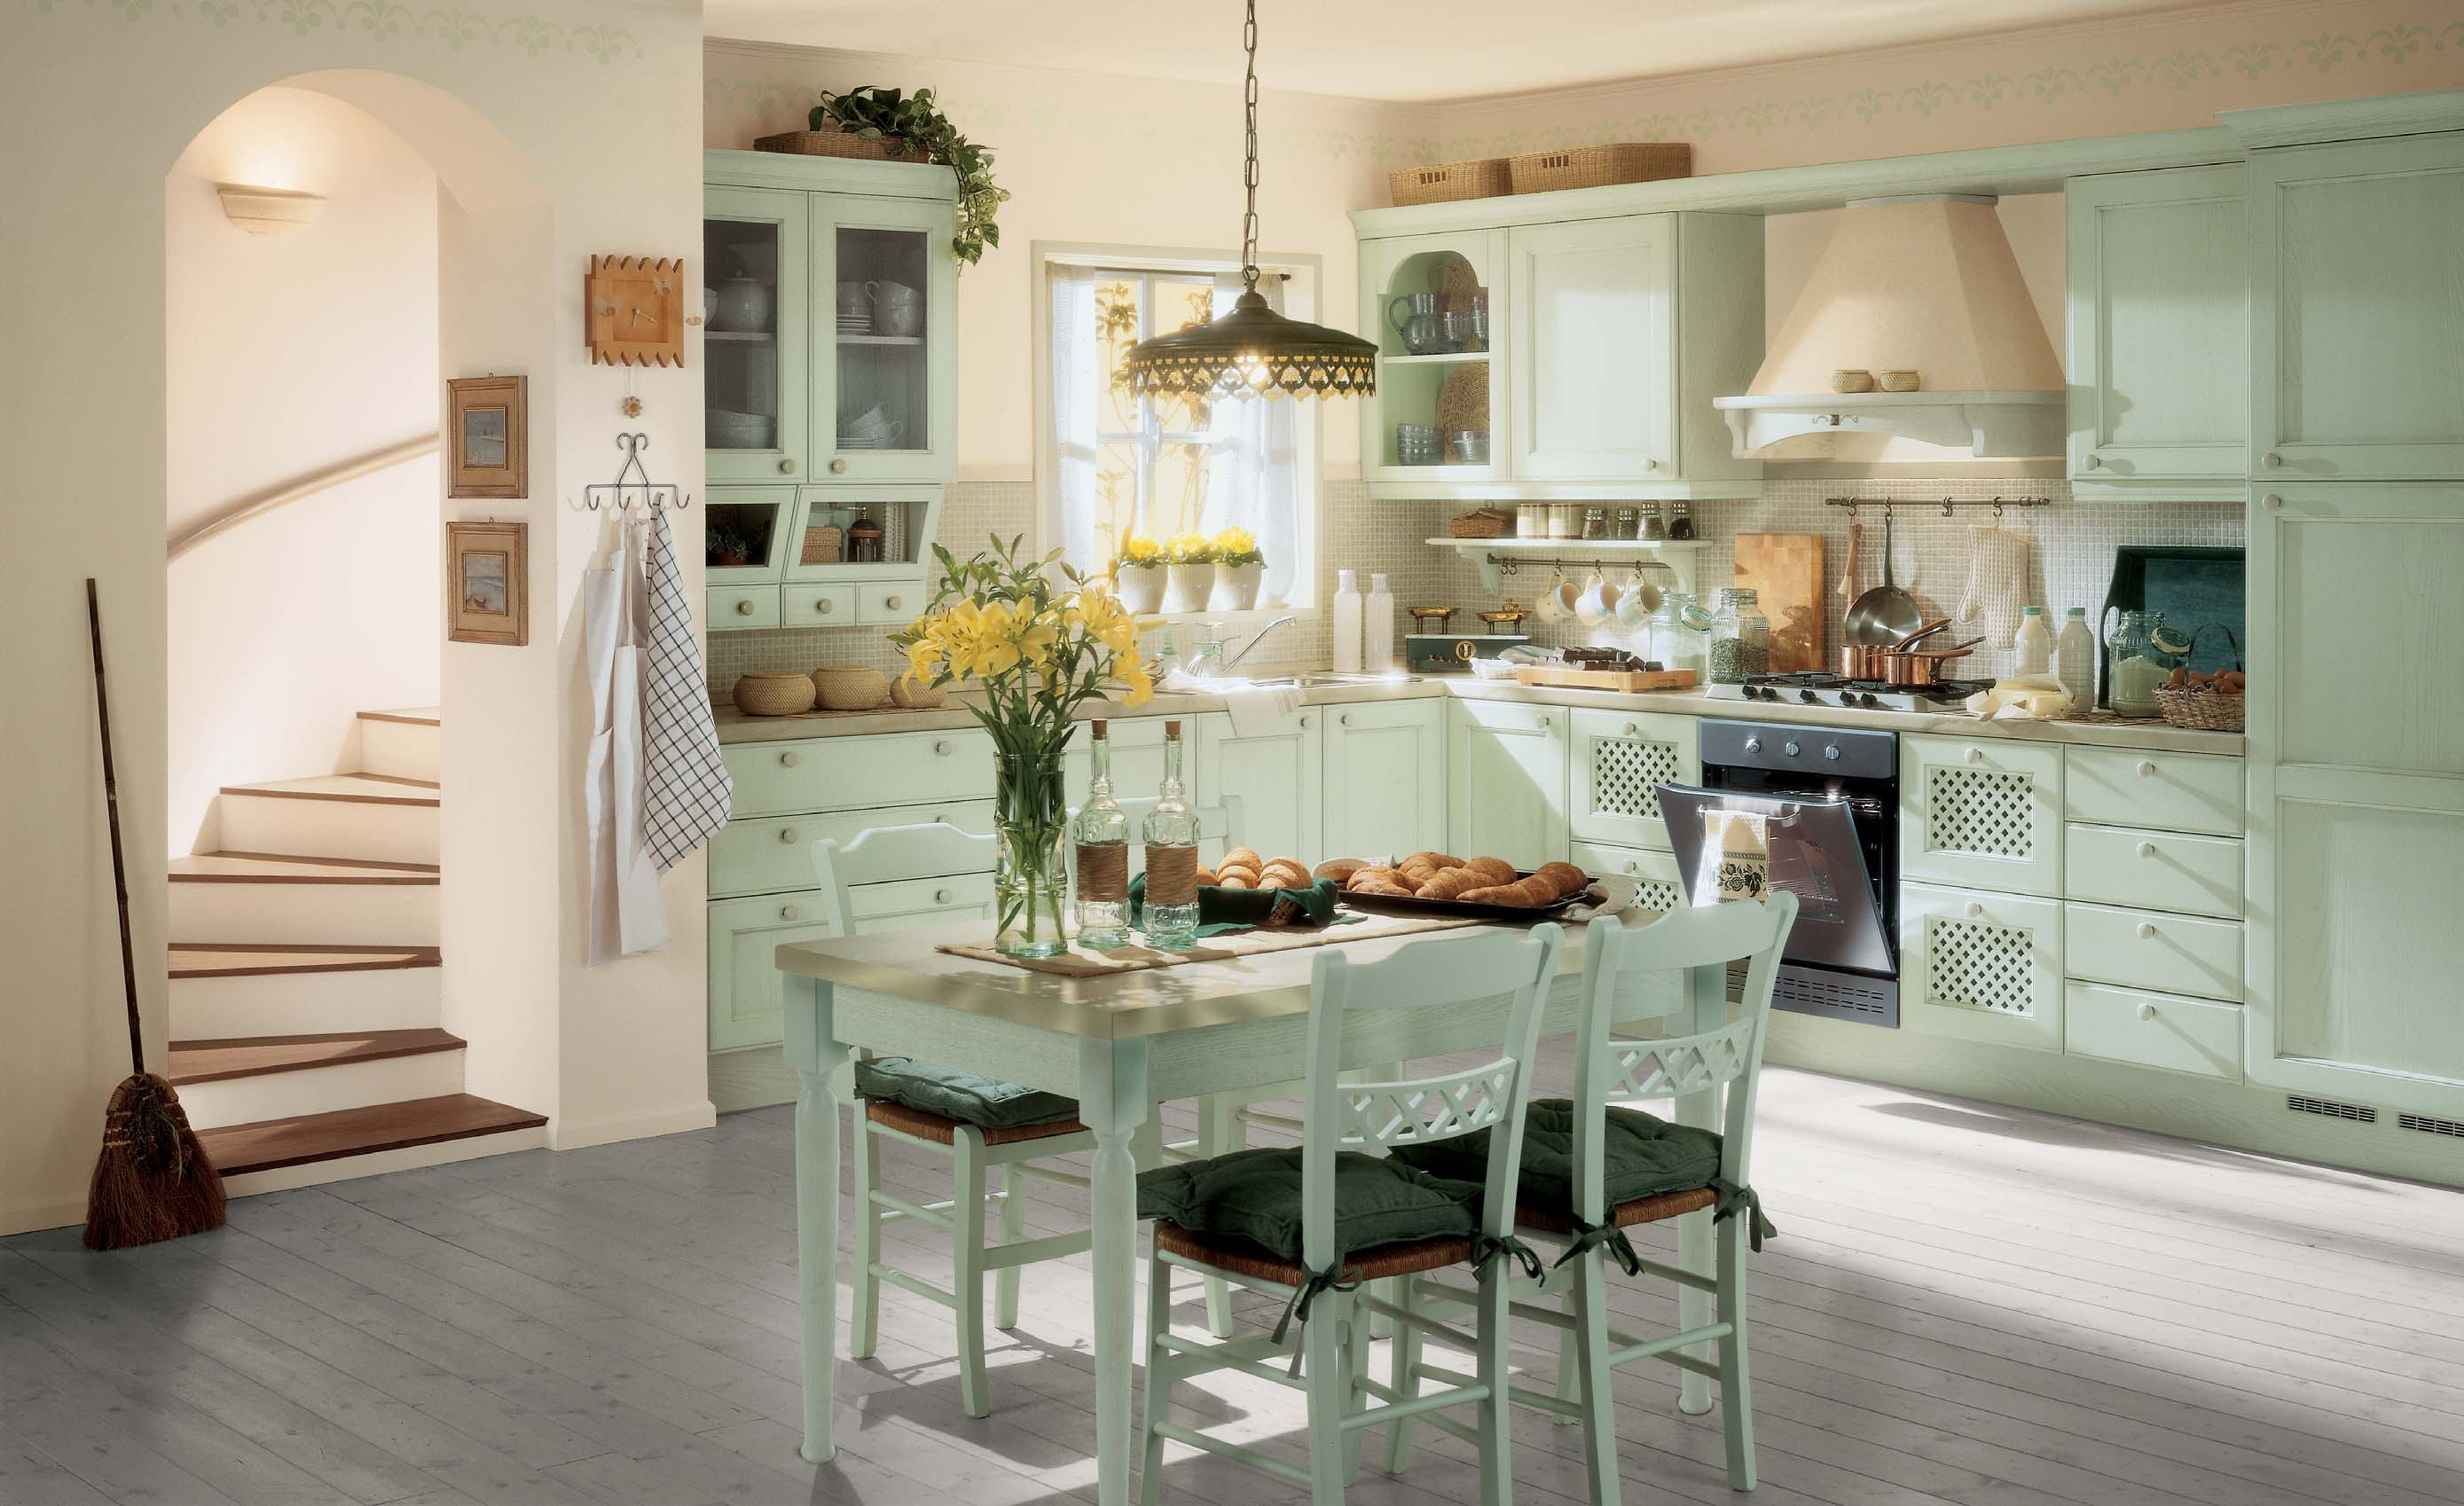 small country kitchen designs pictures country kitchen design ideas small country kitchen designs pictures photo 2